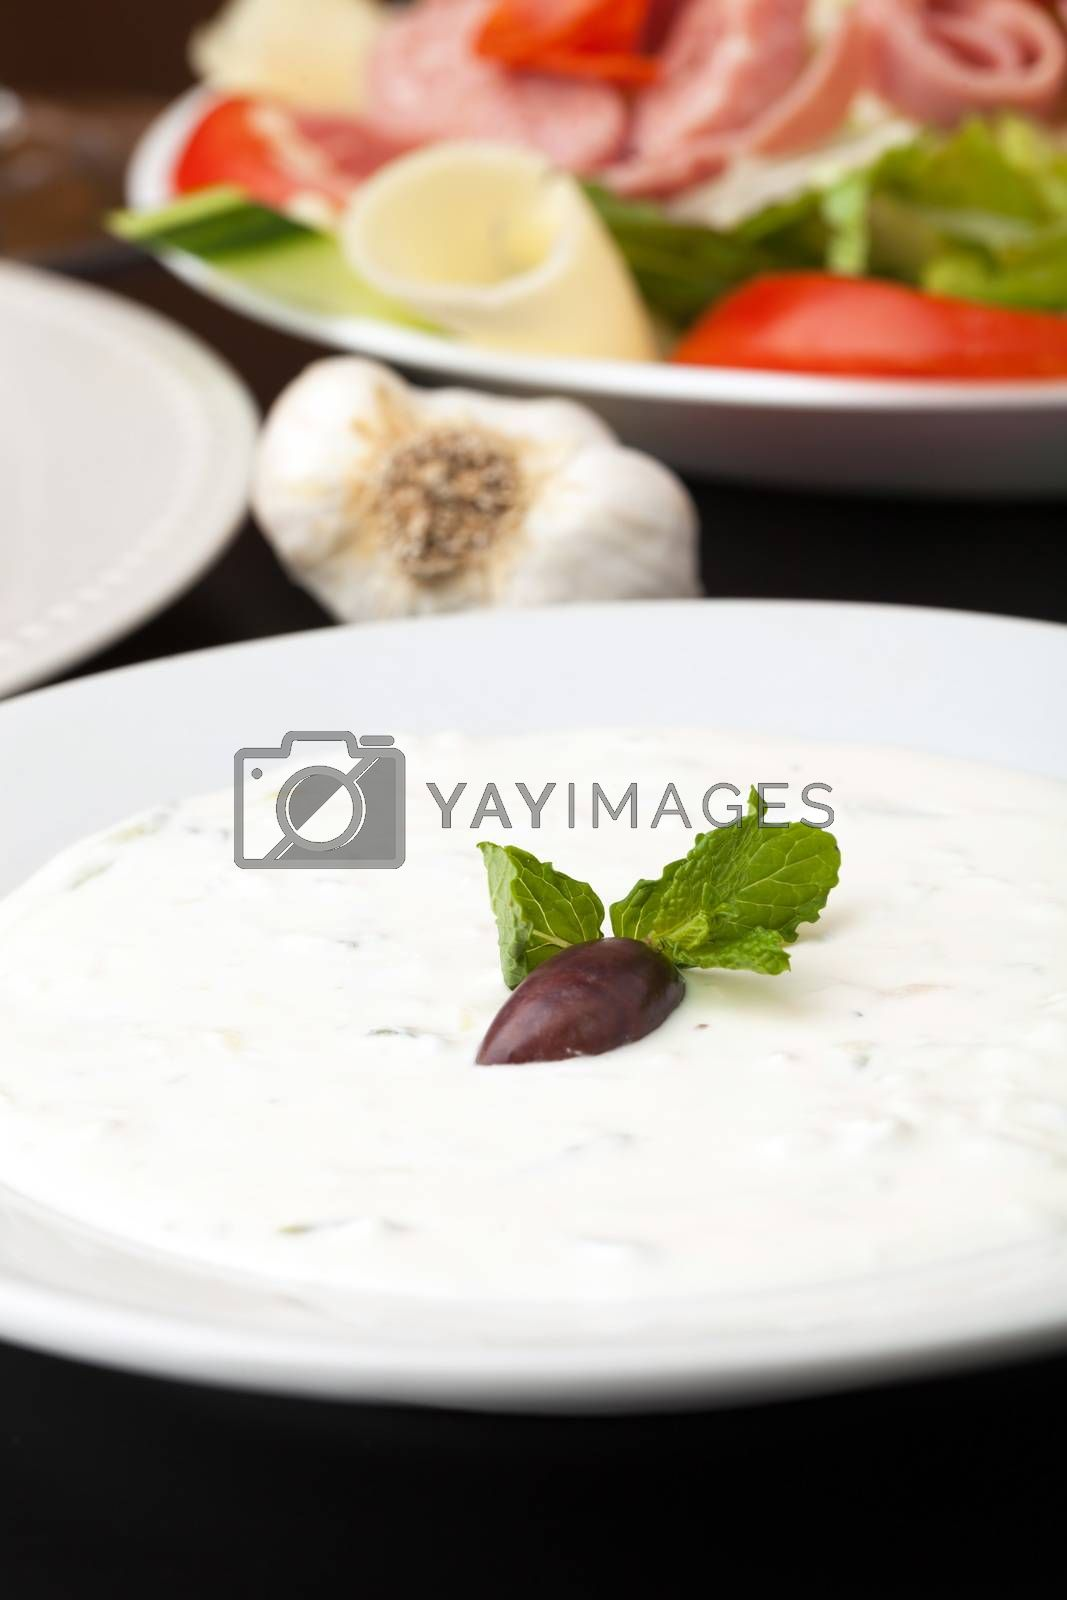 Traditional Gyro sandwich tzatziki sauce garnished with a kalamata olive and mint. Shallow depth of field.